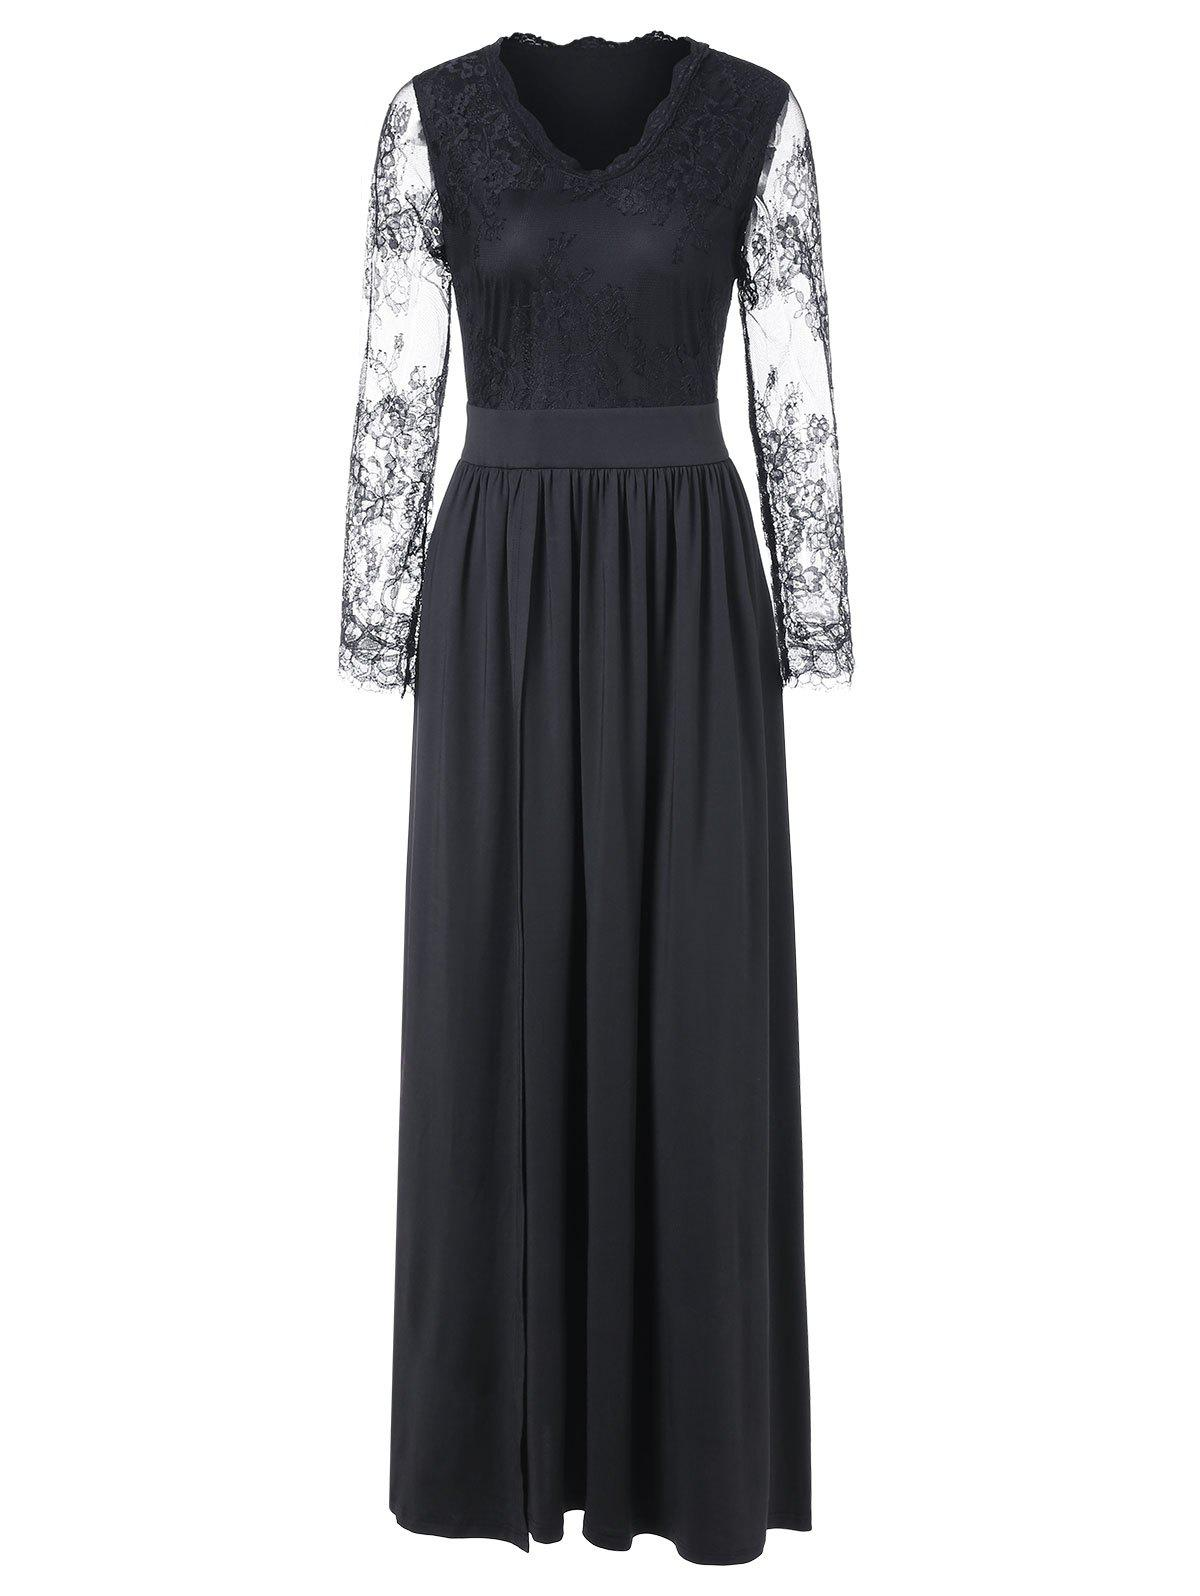 Lace Panel Long Sleeve Maxi Formal Dress - BLACK 2XL